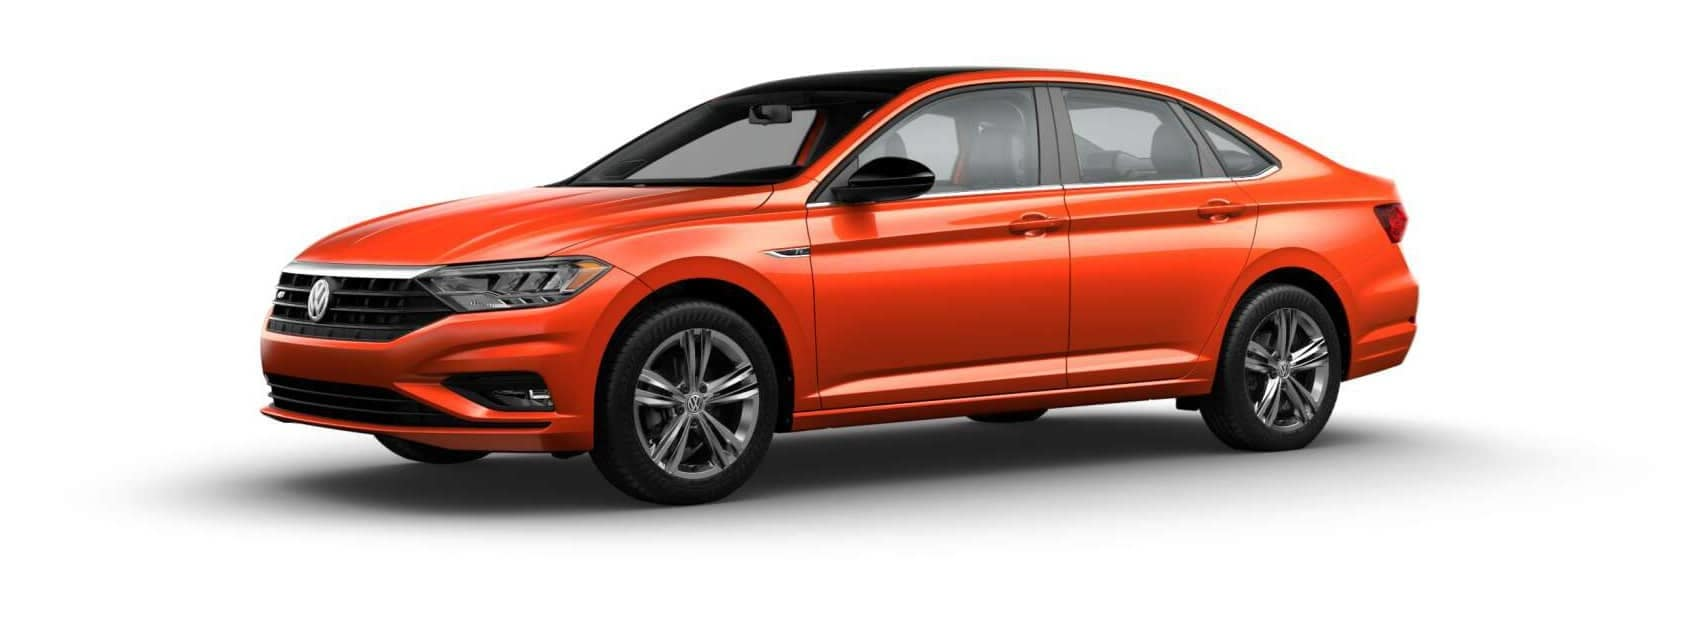 2019 VW Jetta Trim Image